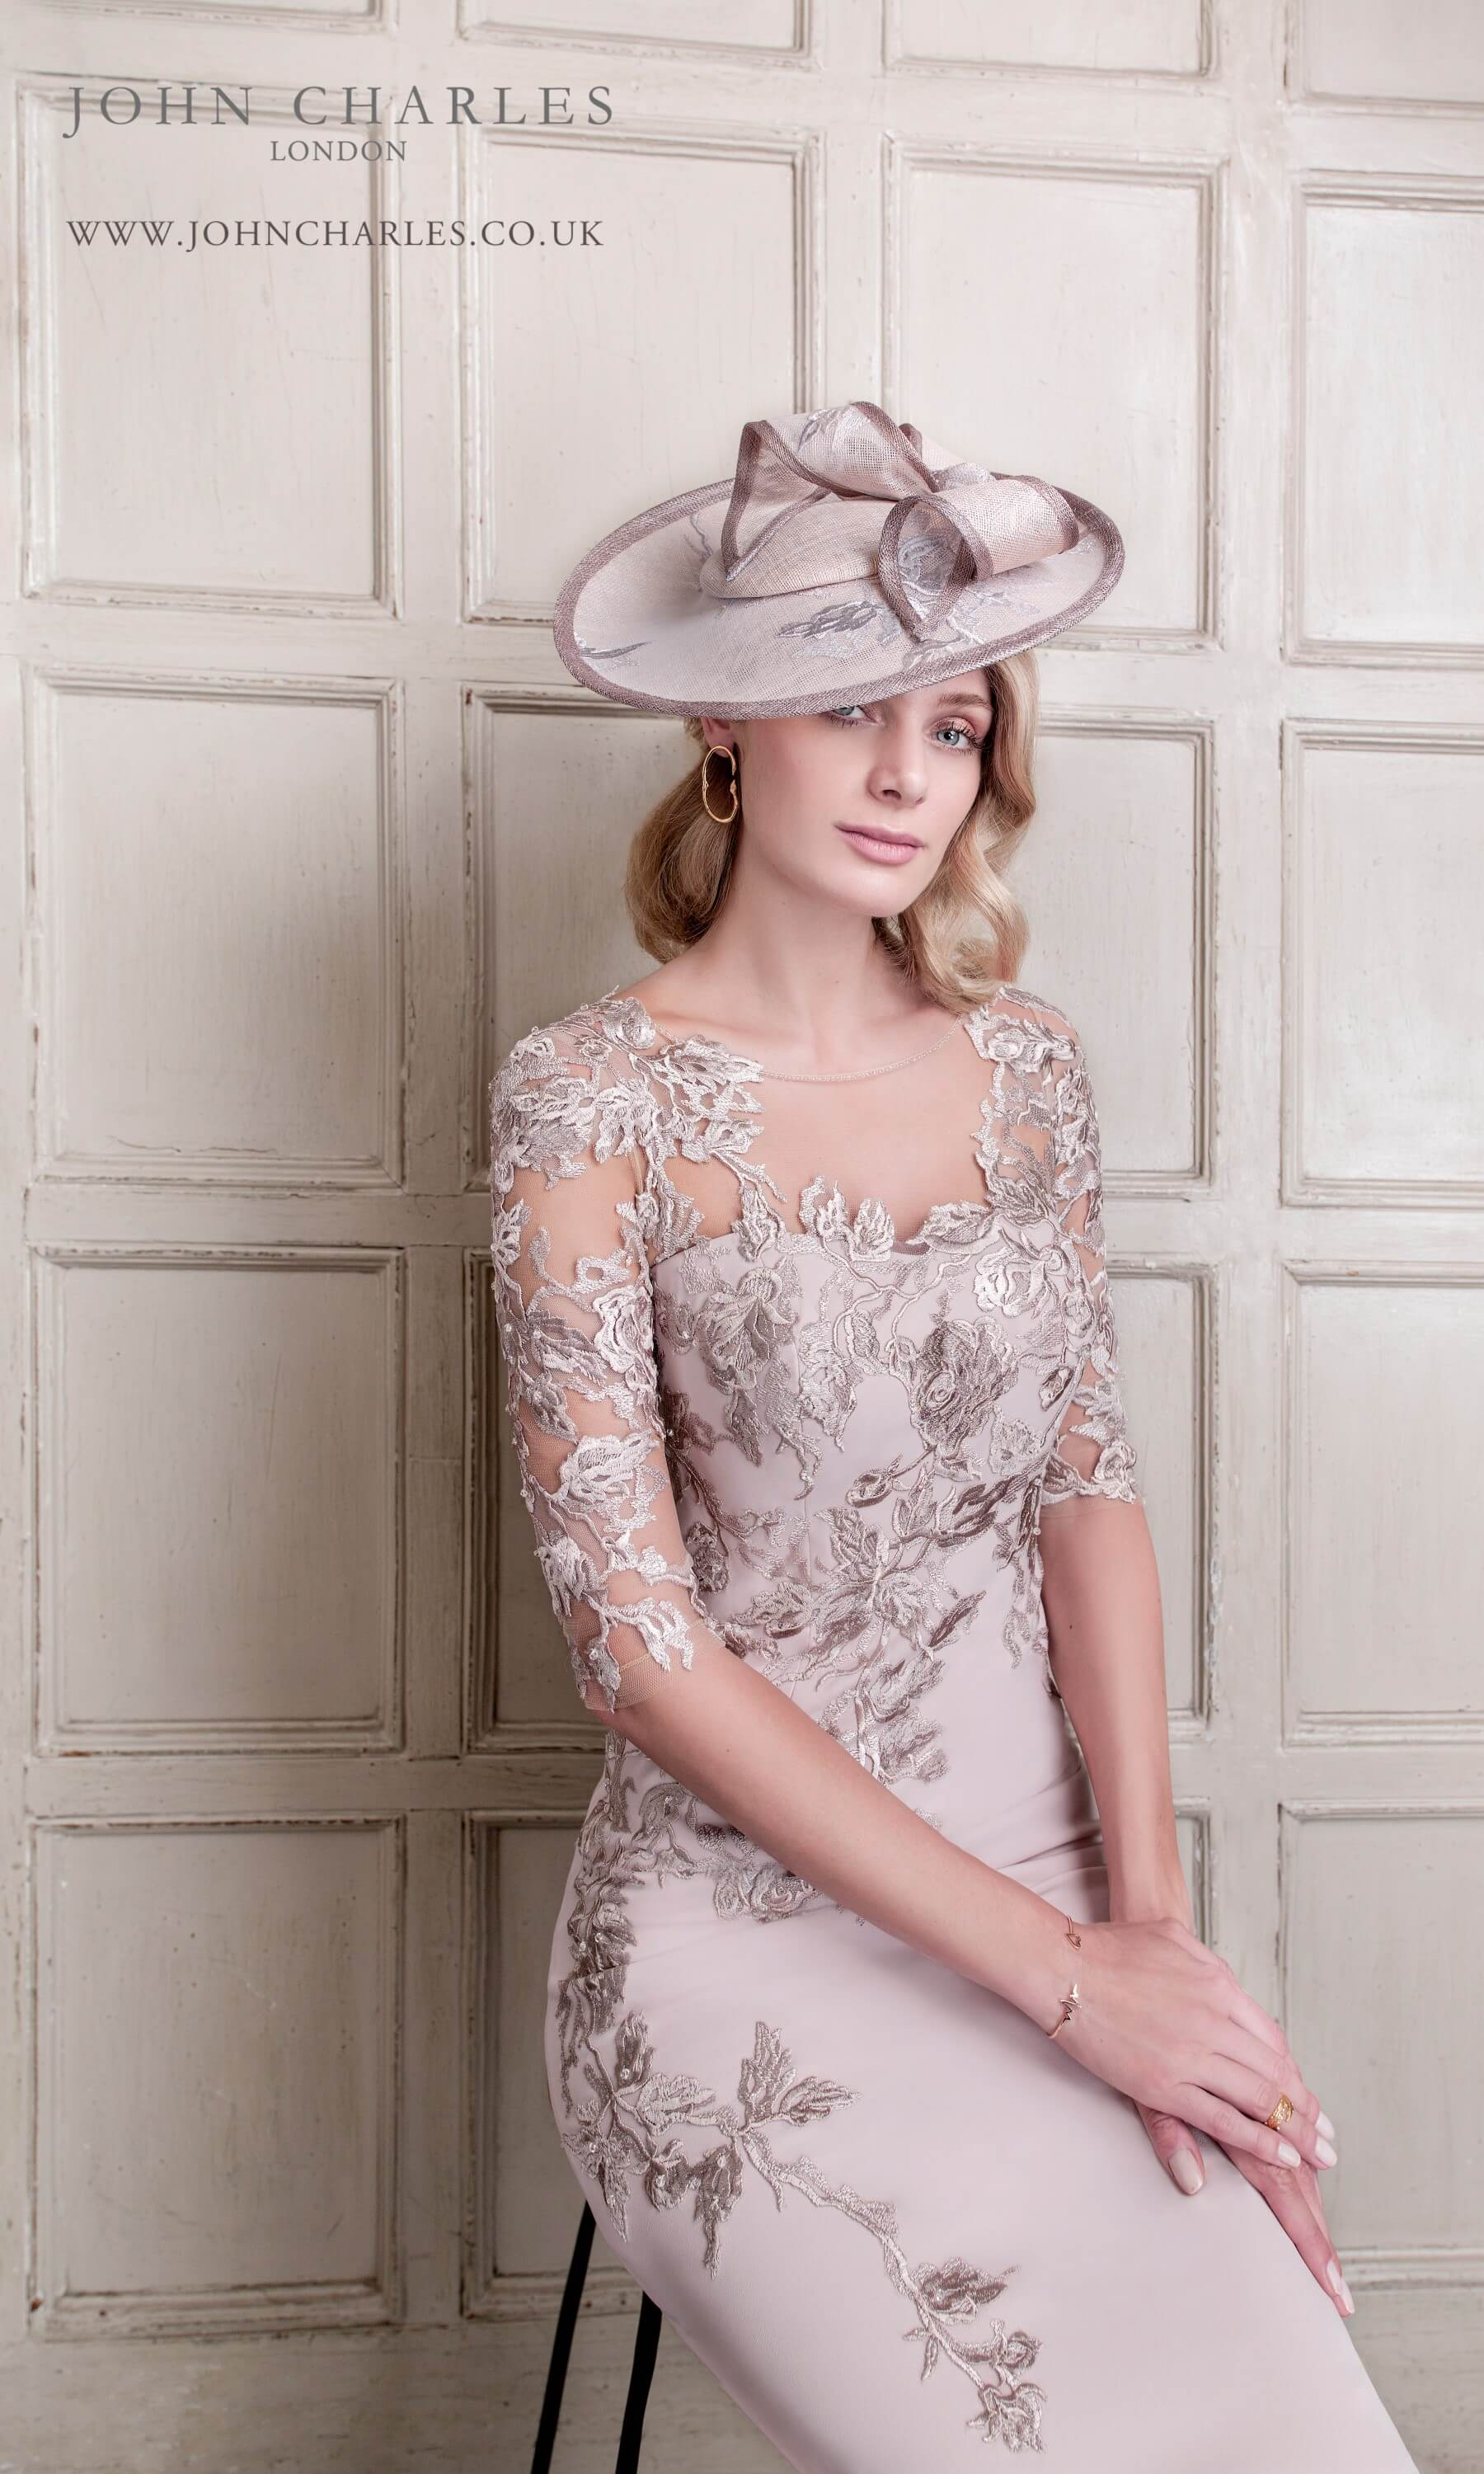 Favorite Fab Frocks Boutique Dress Bournemouth E Fab Frocks Boutique Mor Bournemouth Fab Beauty Dress Coupon Code Fab Beauty Dress Bride Occasionwear wedding dress Fab Beauty Dress